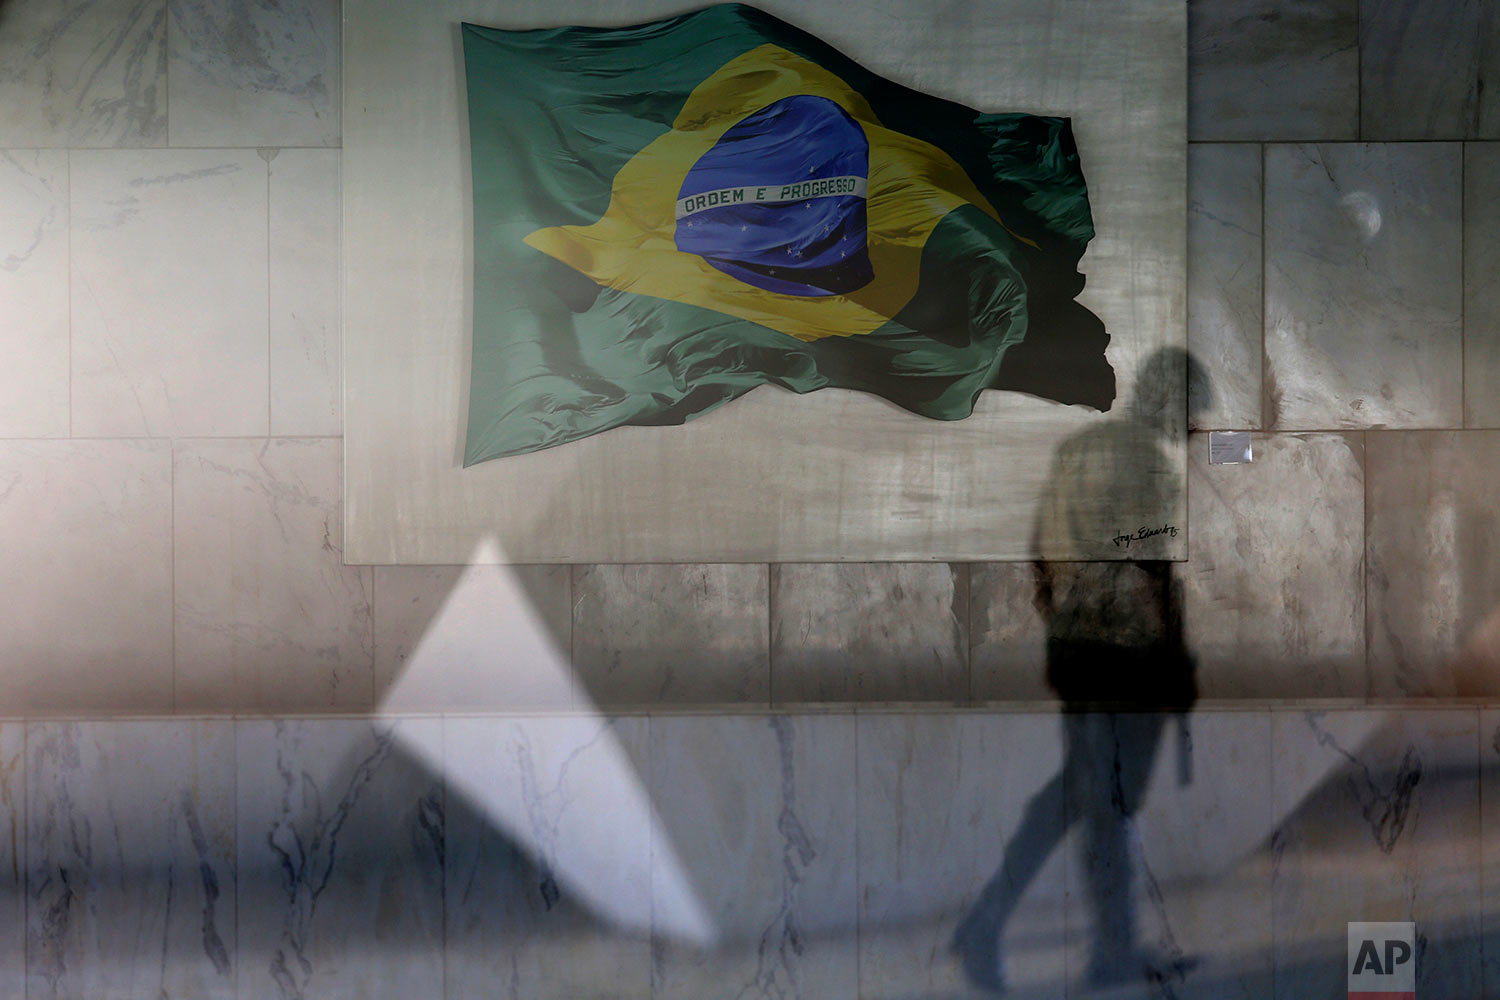 A presidential guard walks past a window that allows a view into the Planalto presidential palace's main lounge, decorated with an image of a Brazilian national flag, in Brasilia, Brazil, Thursday, April 13, 2017. (AP Photo/Eraldo Peres)